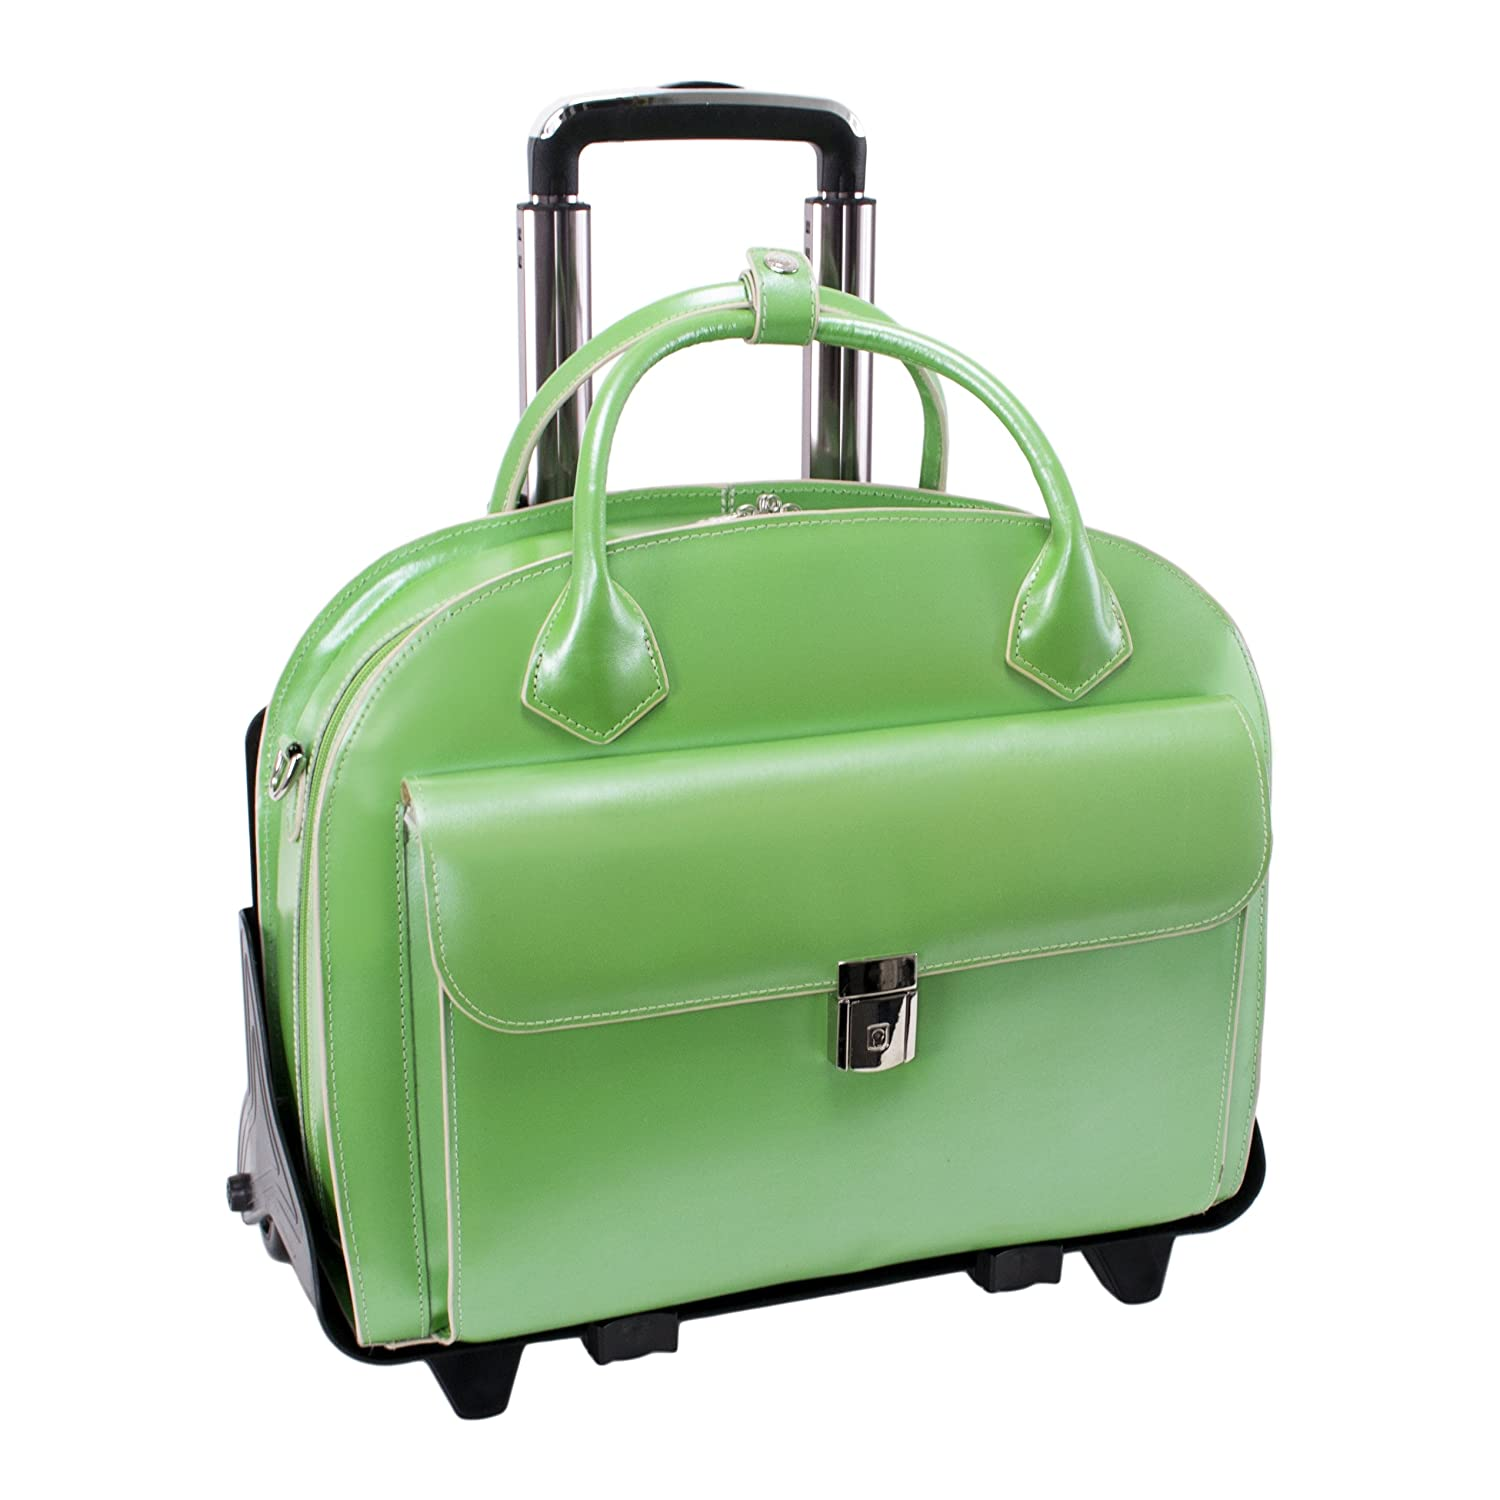 Detachable Wheeled Women's Laptop Briefcase Leather Mid Size Green GLEN ELLYN | Mcklein 94361